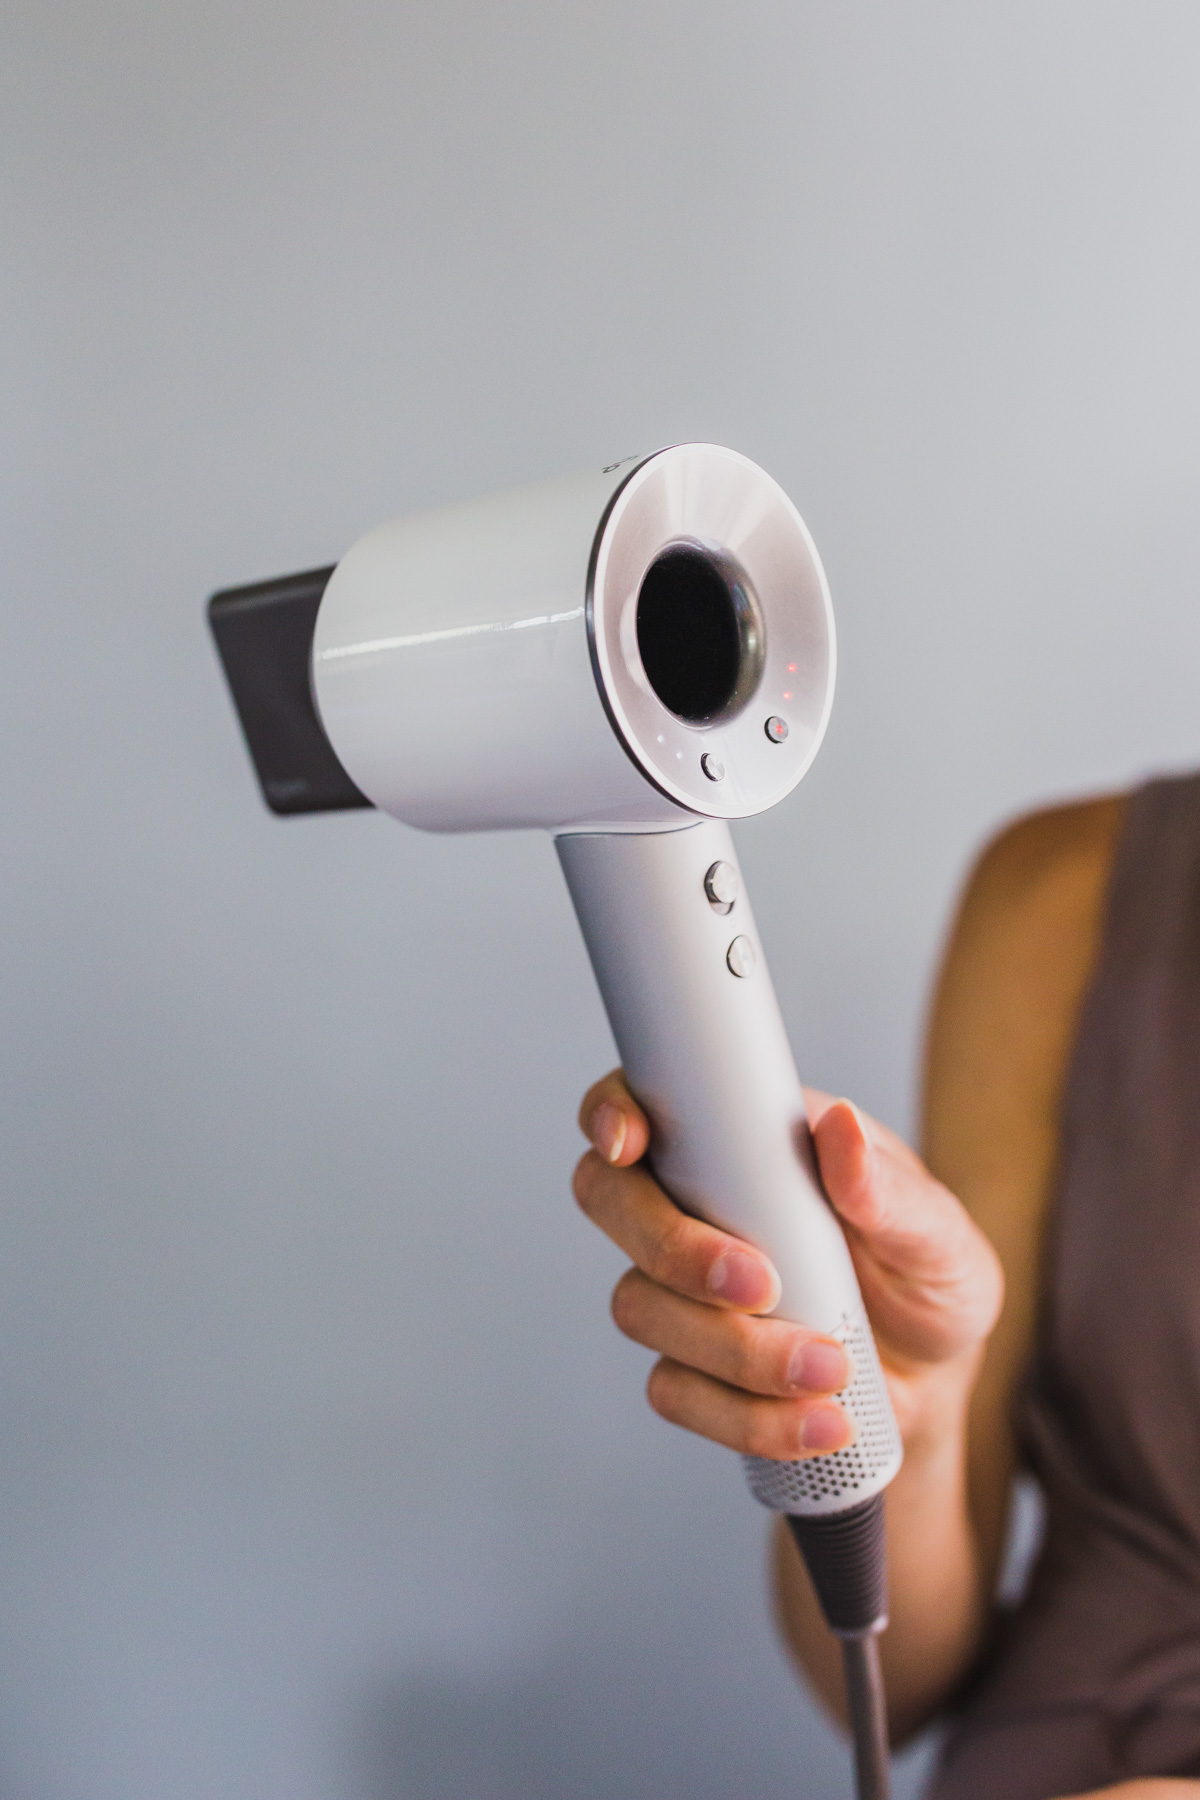 Where to Buy a Supersonic Hairdryer